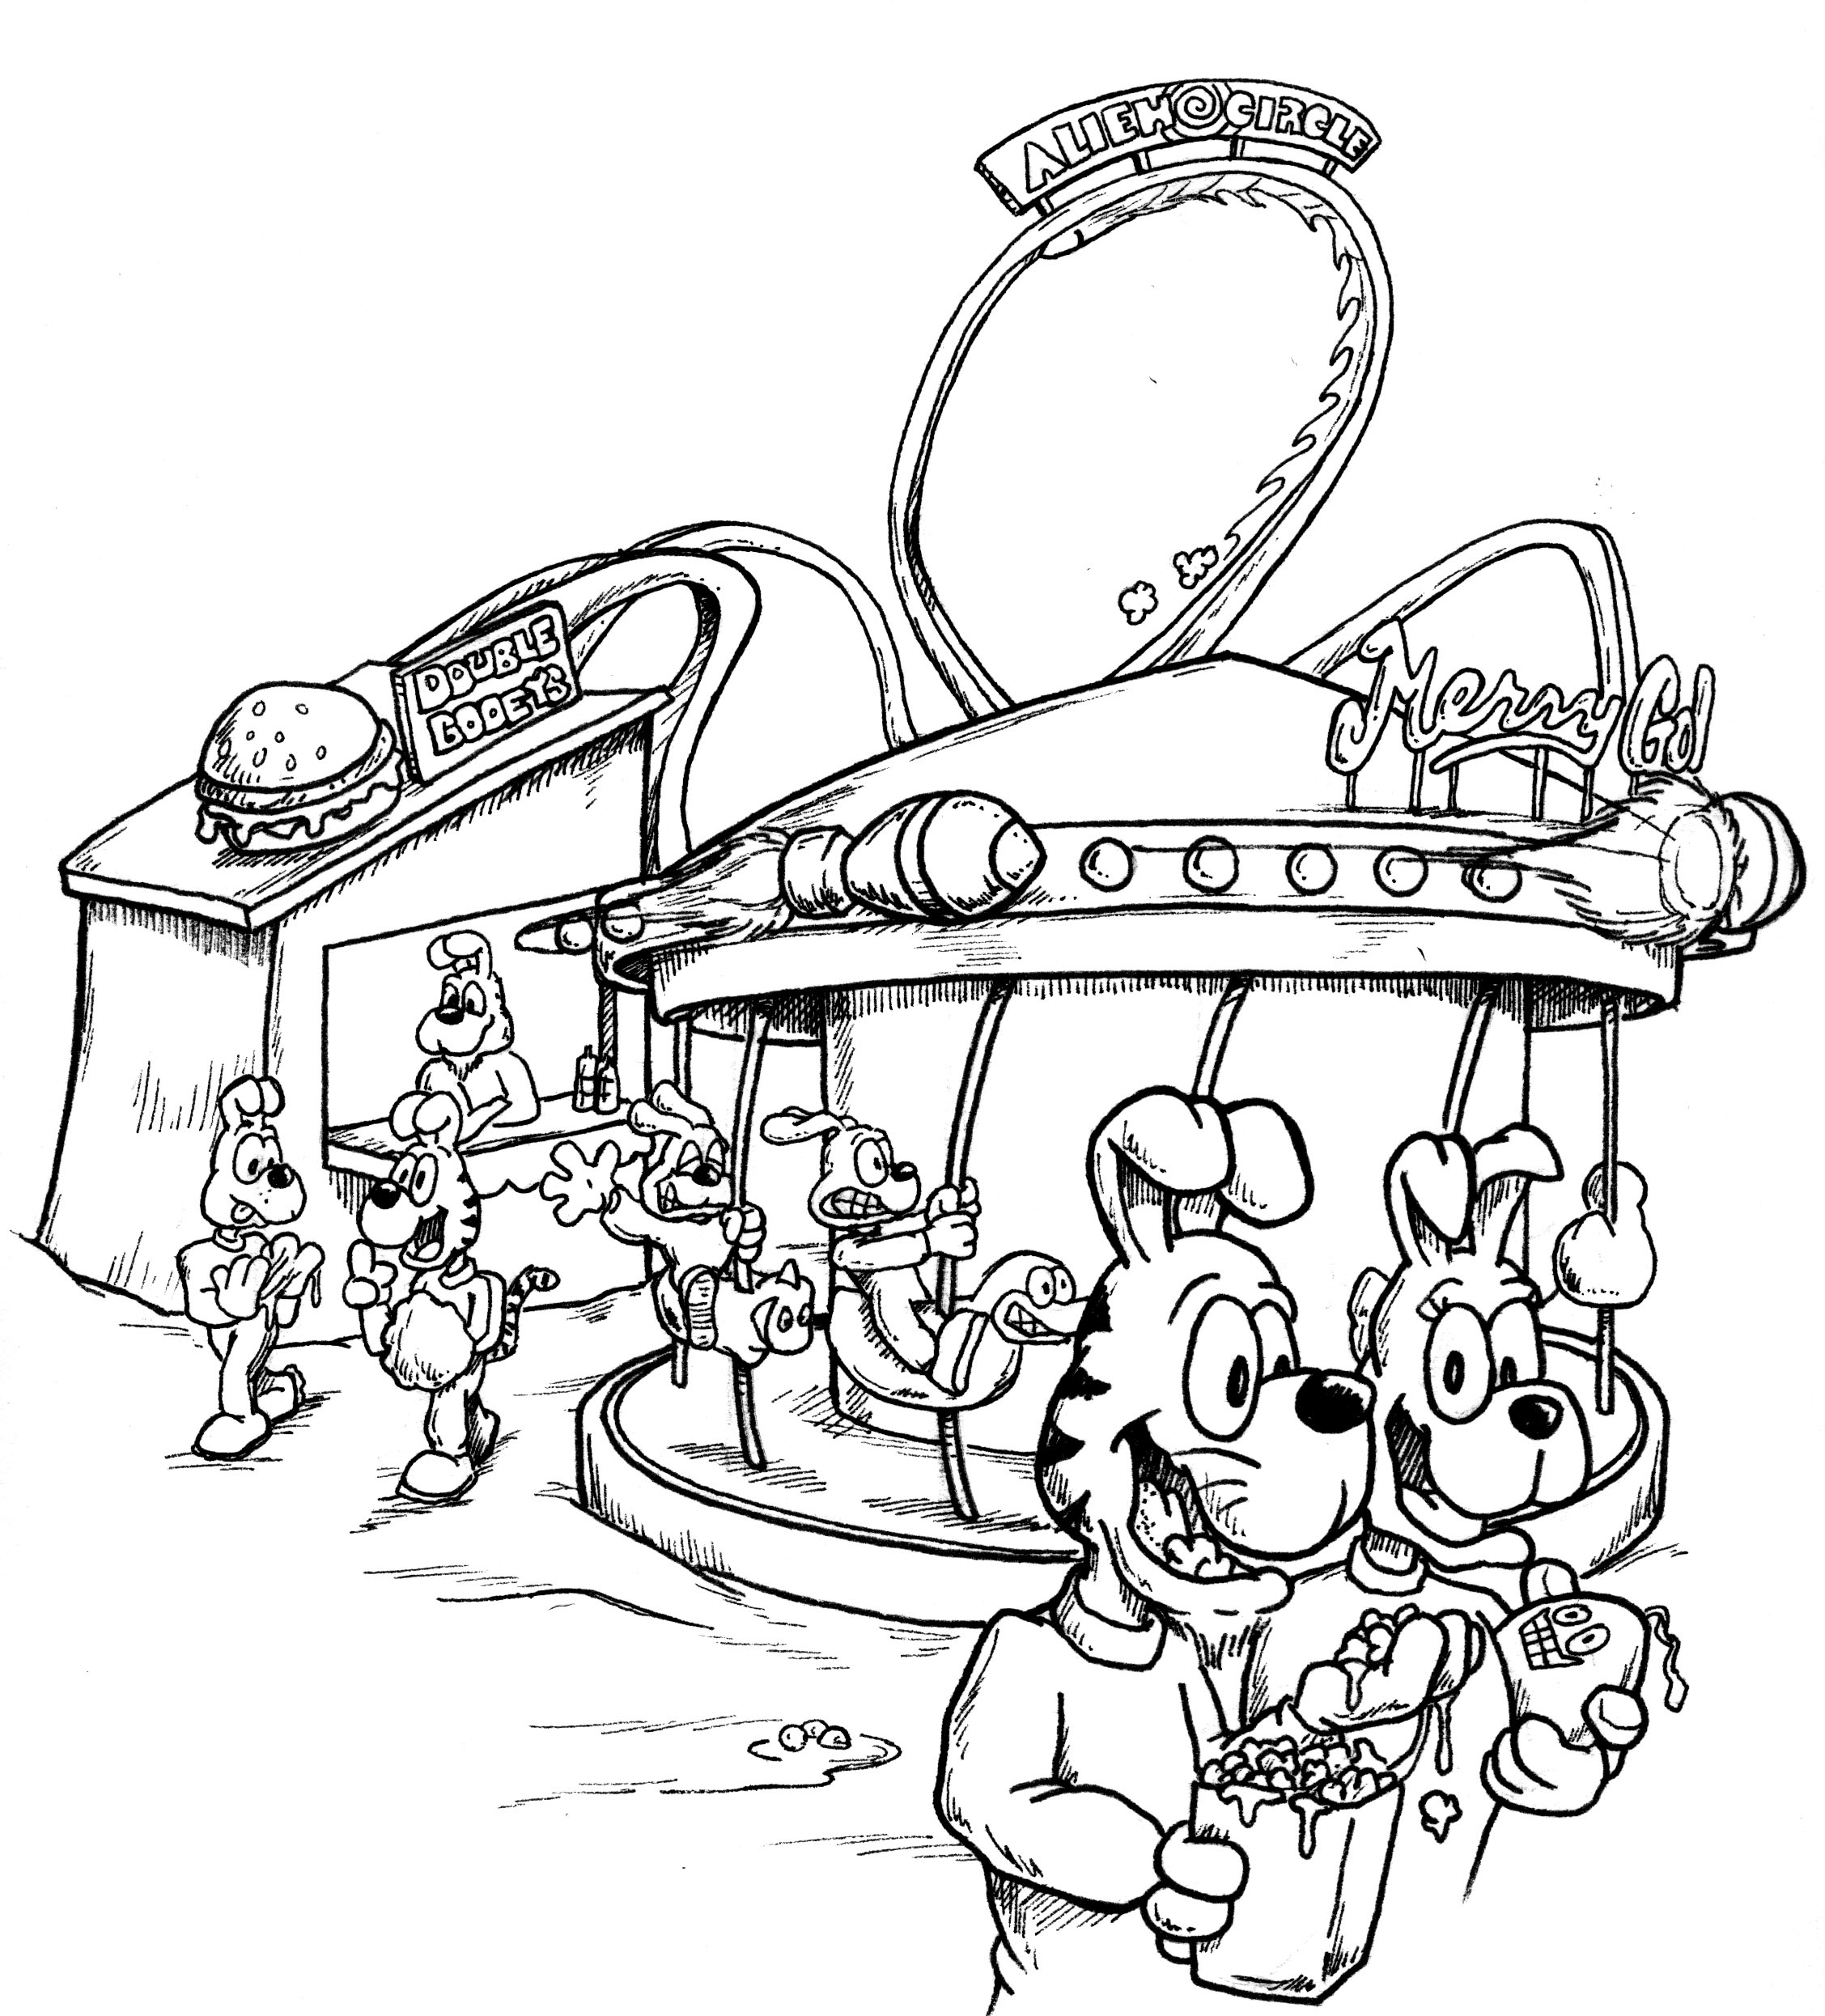 Carnival coloring pages on Coloring-Book.info | 2491x2255